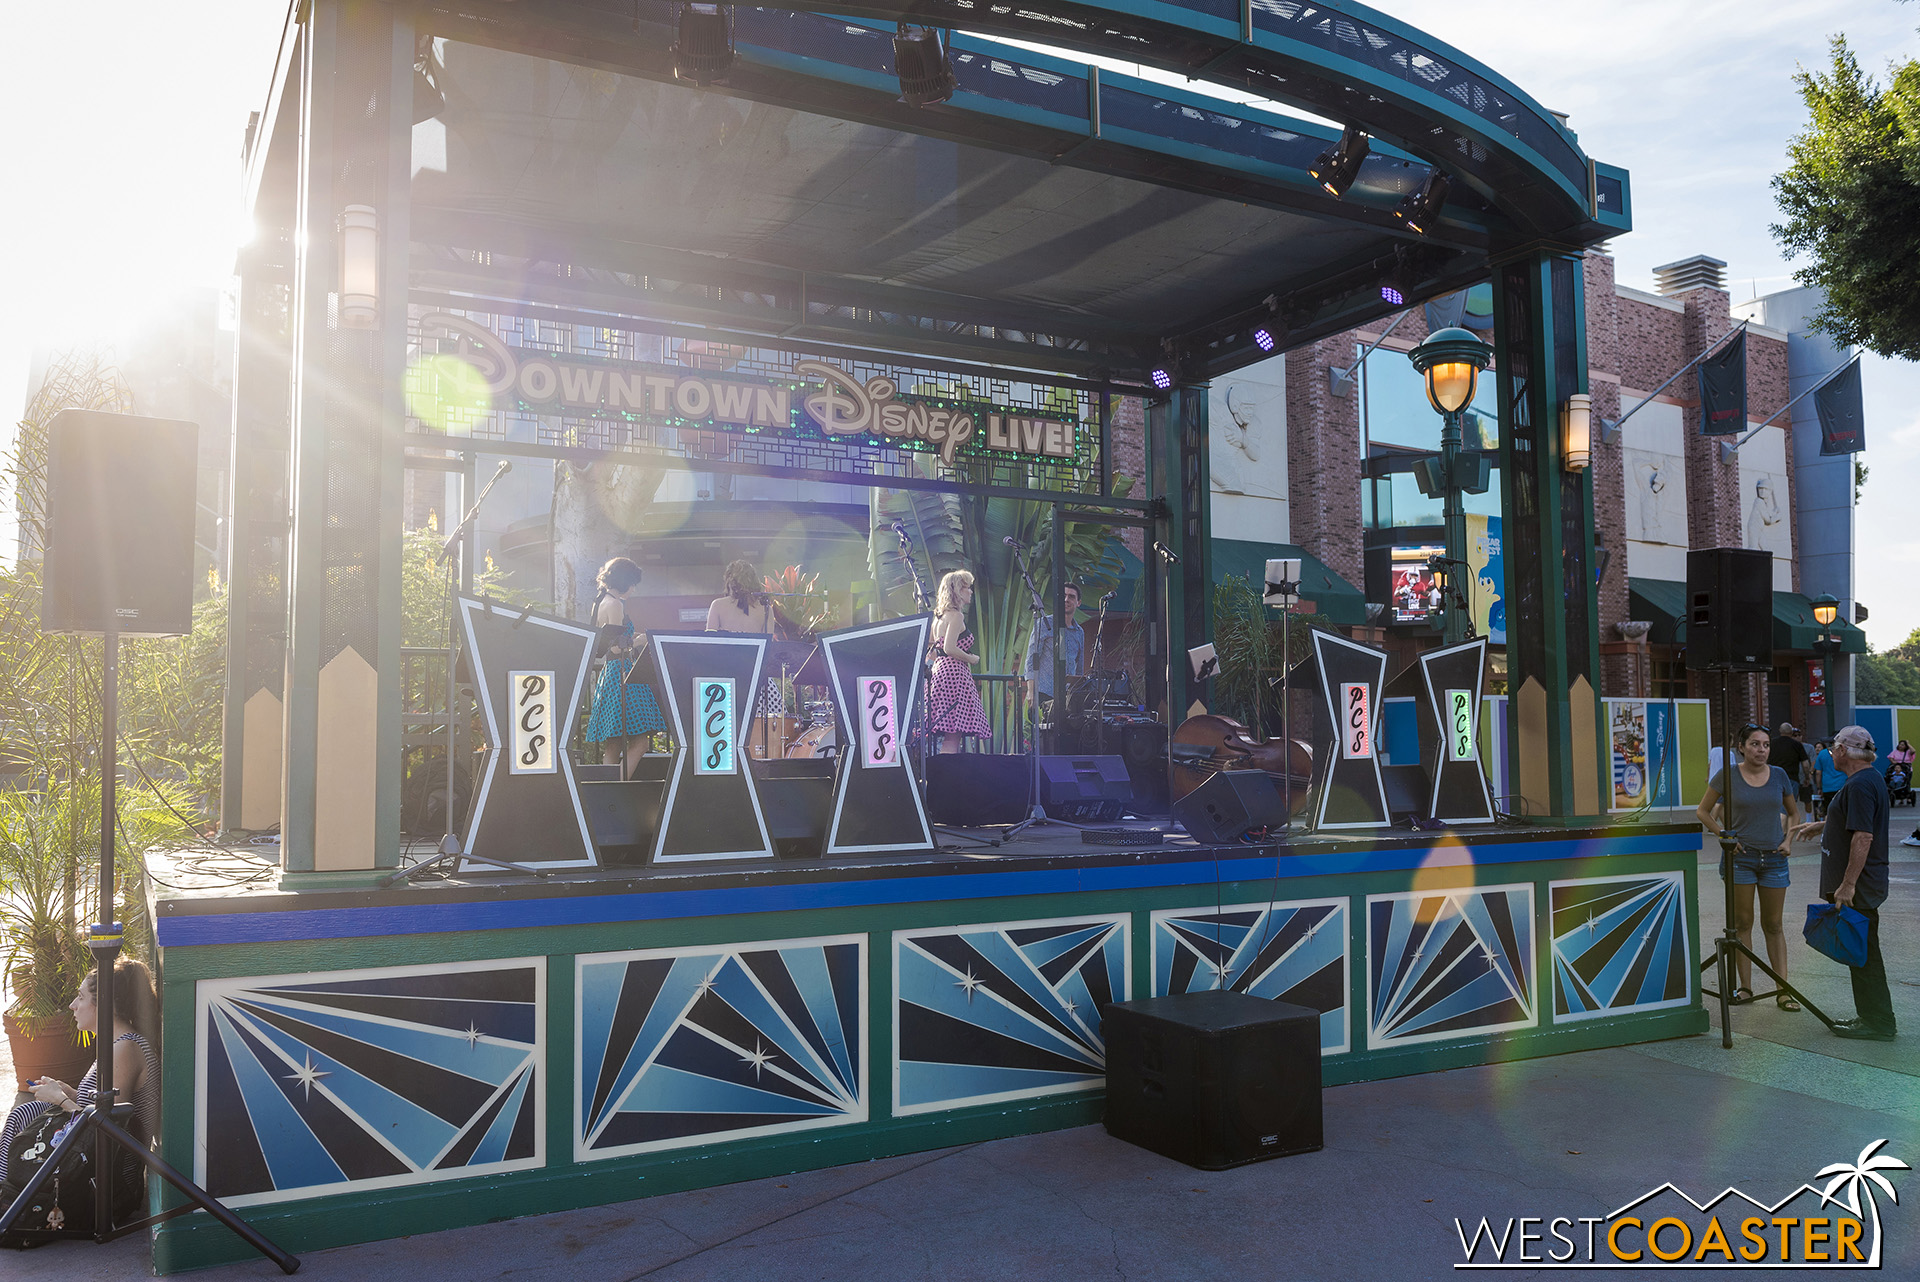 They've continued live entertainment at the stage near the ESPN Zone, Rainforest Cafe, and AMC Theaters.